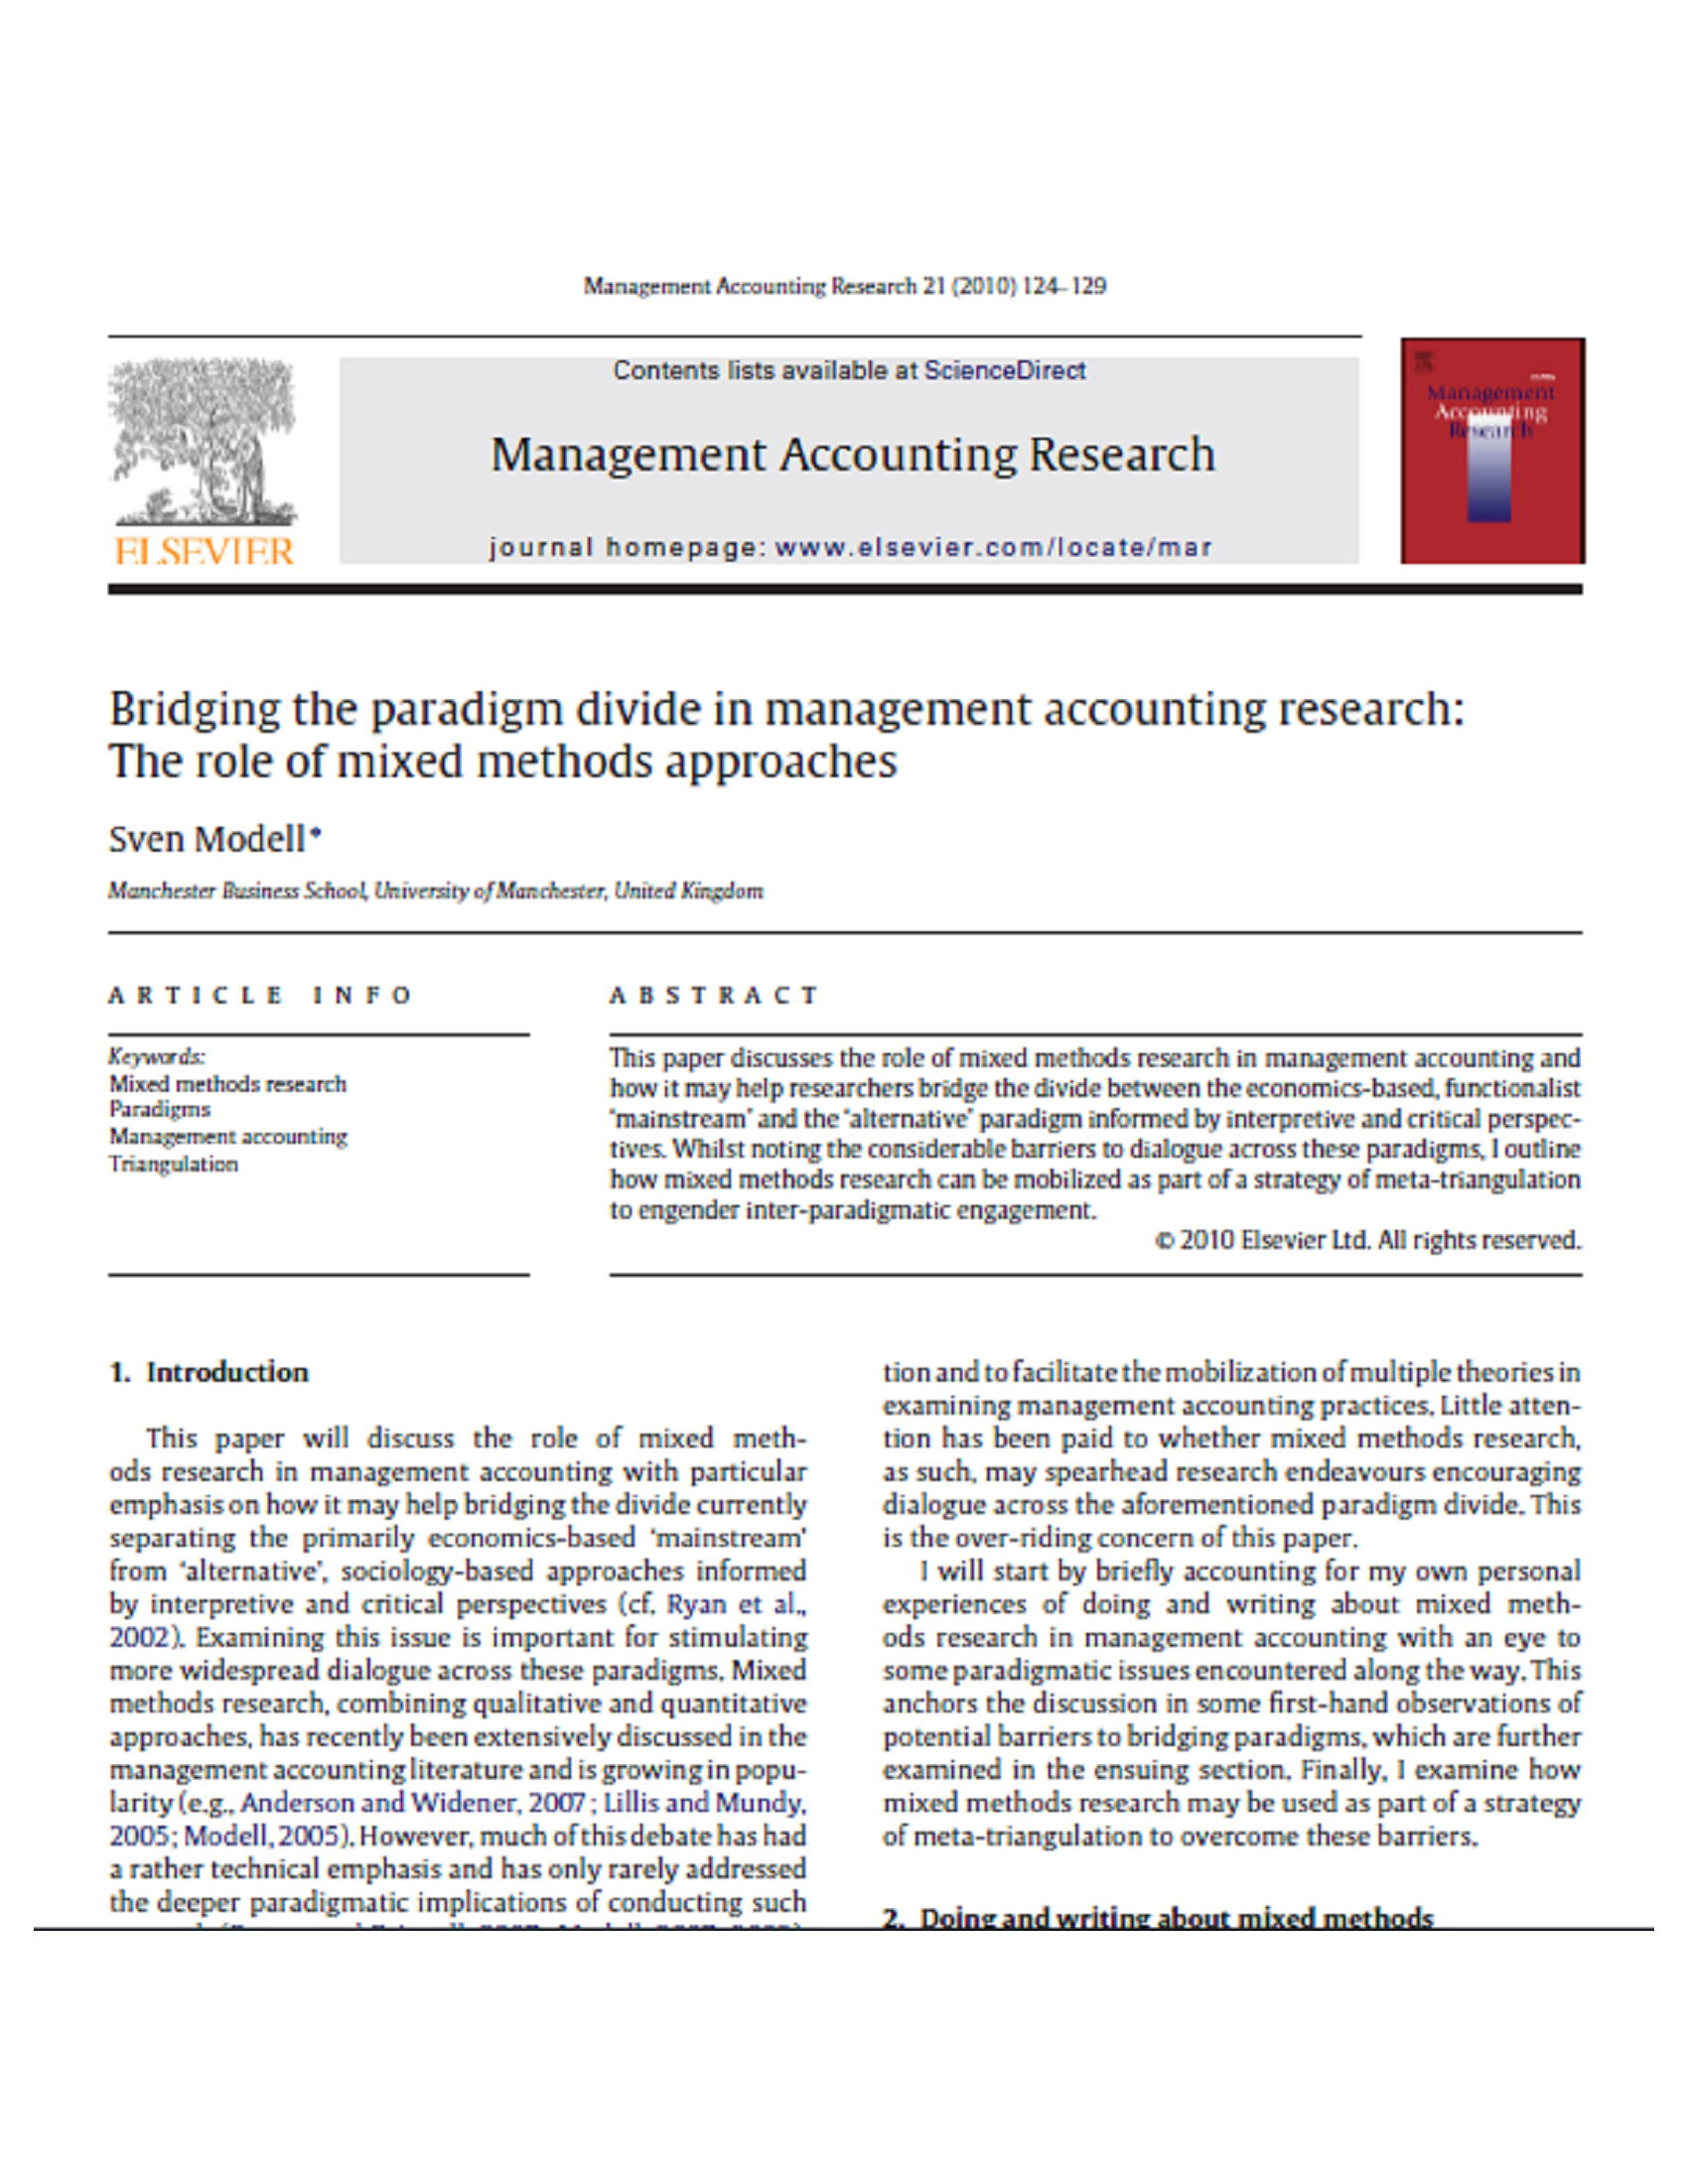 Bridging the paradigm divide in management accounting research: The role of mixed methods approaches 6